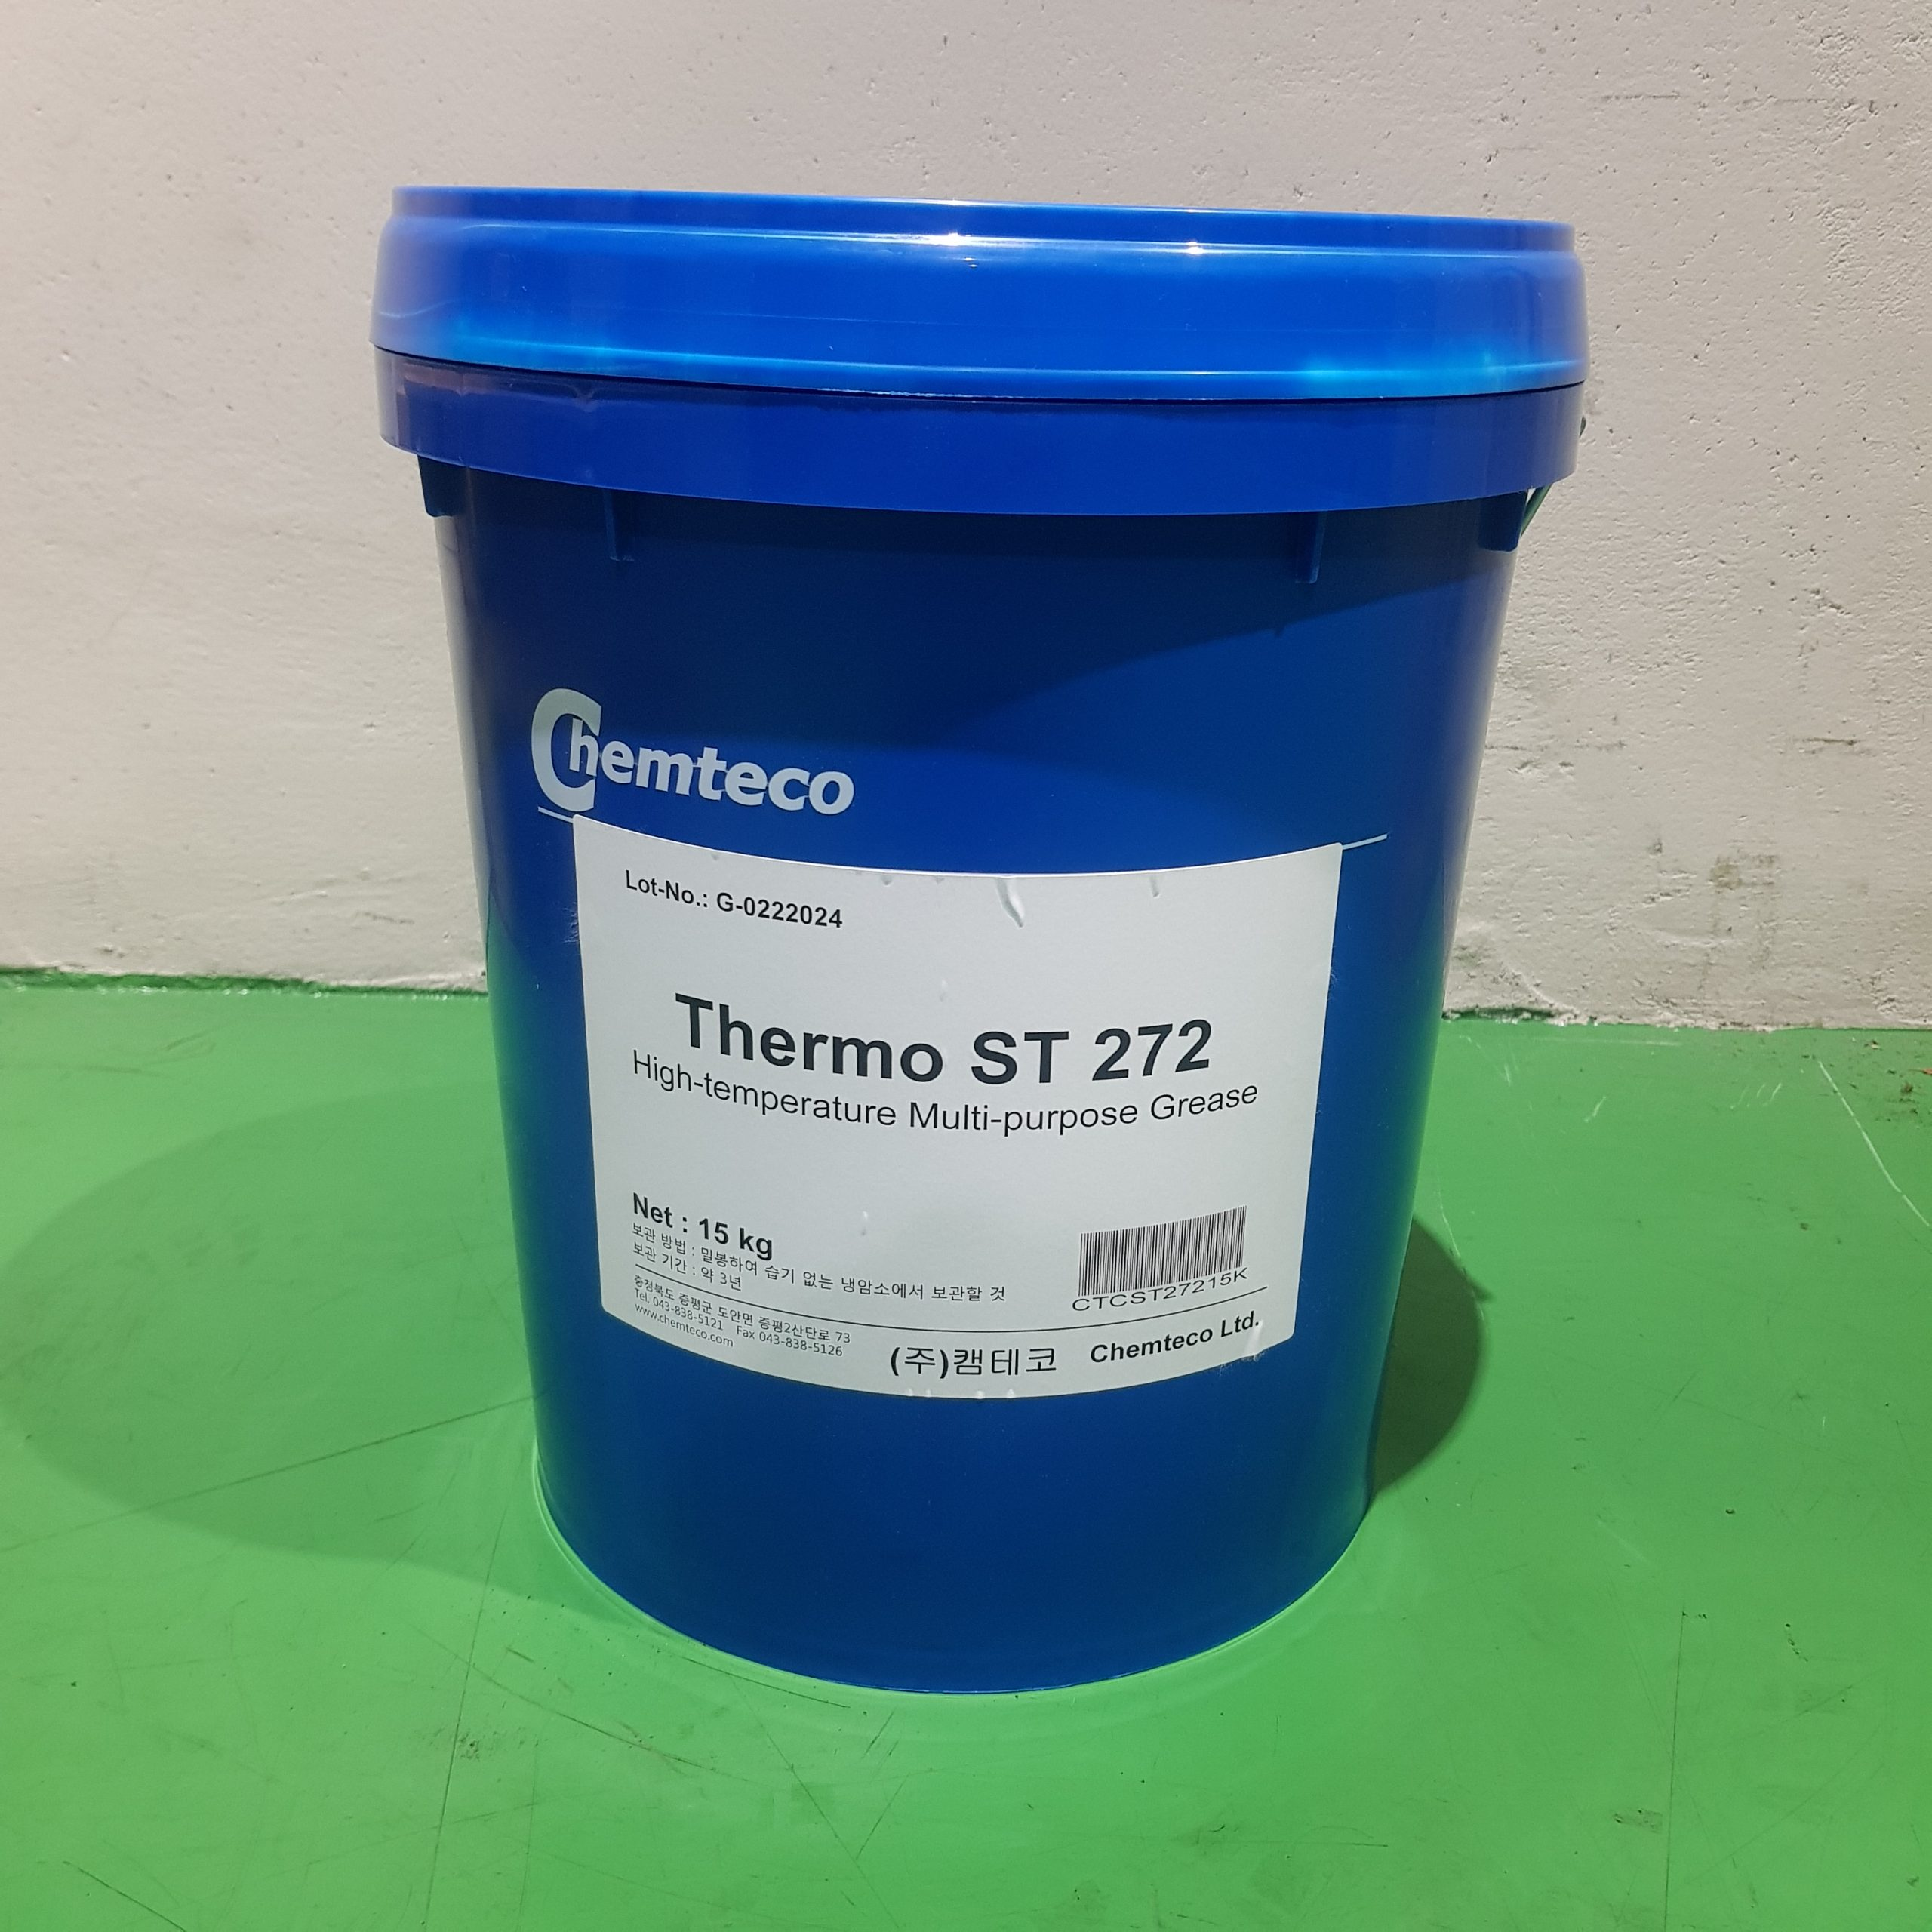 Thermo ST 272